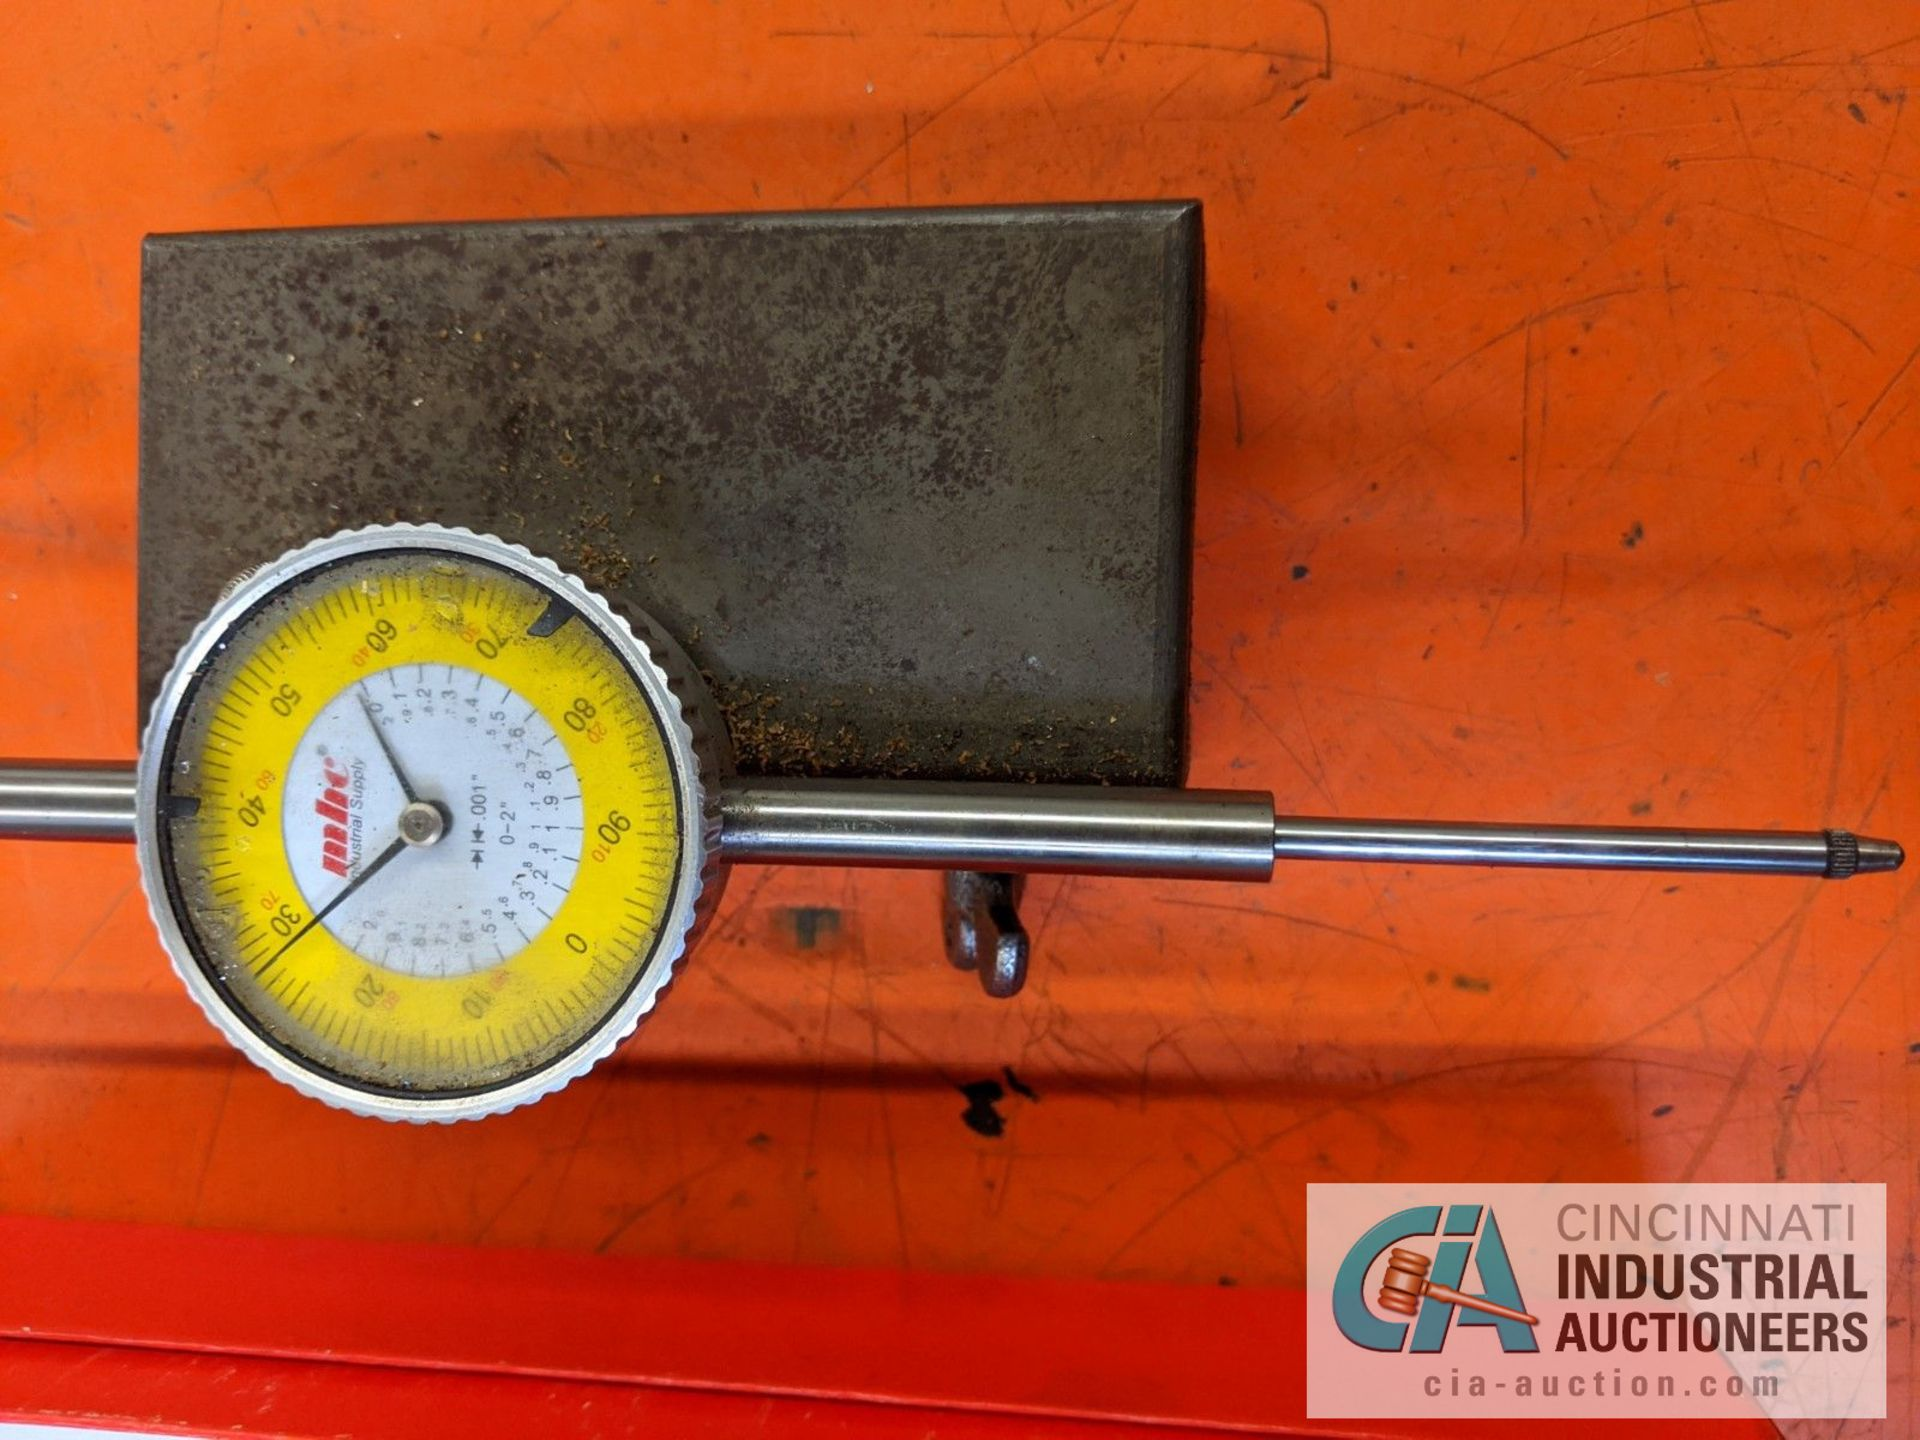 (LOT) ASSORTED DIAL INDICATORS - Image 4 of 7